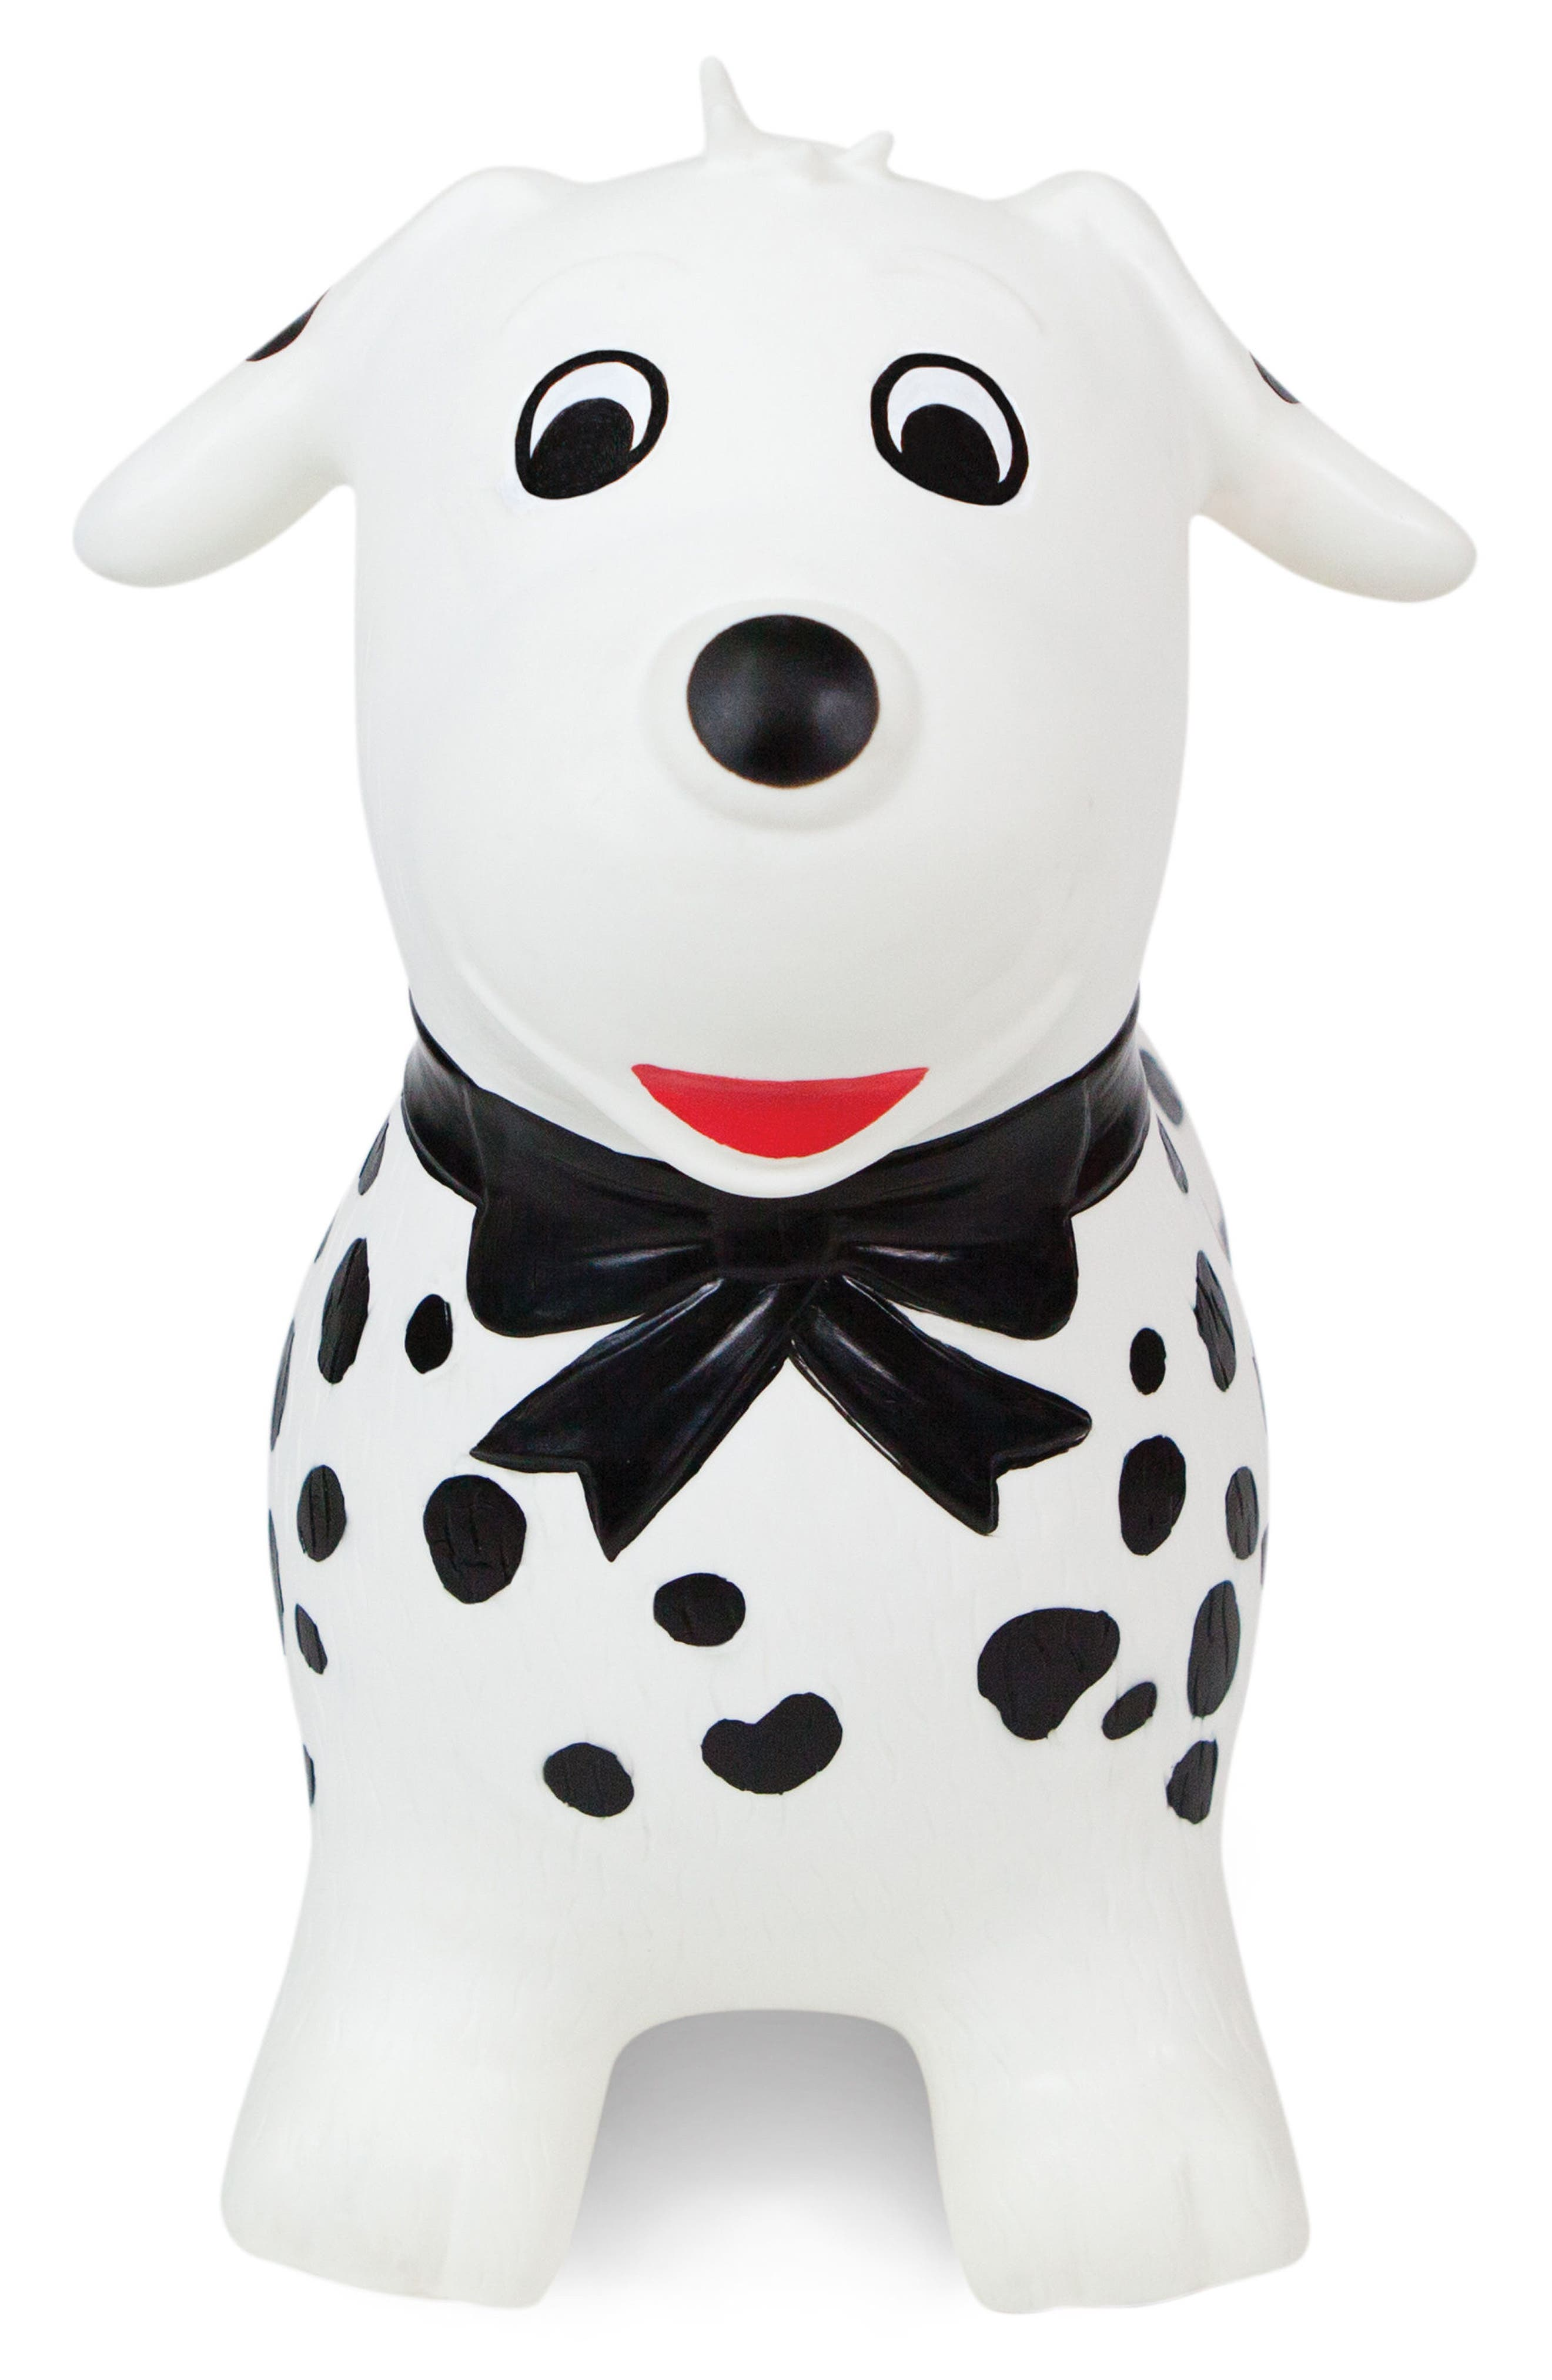 Spots Bouncy Ride-On Dog Toy,                             Main thumbnail 1, color,                             White/ Black